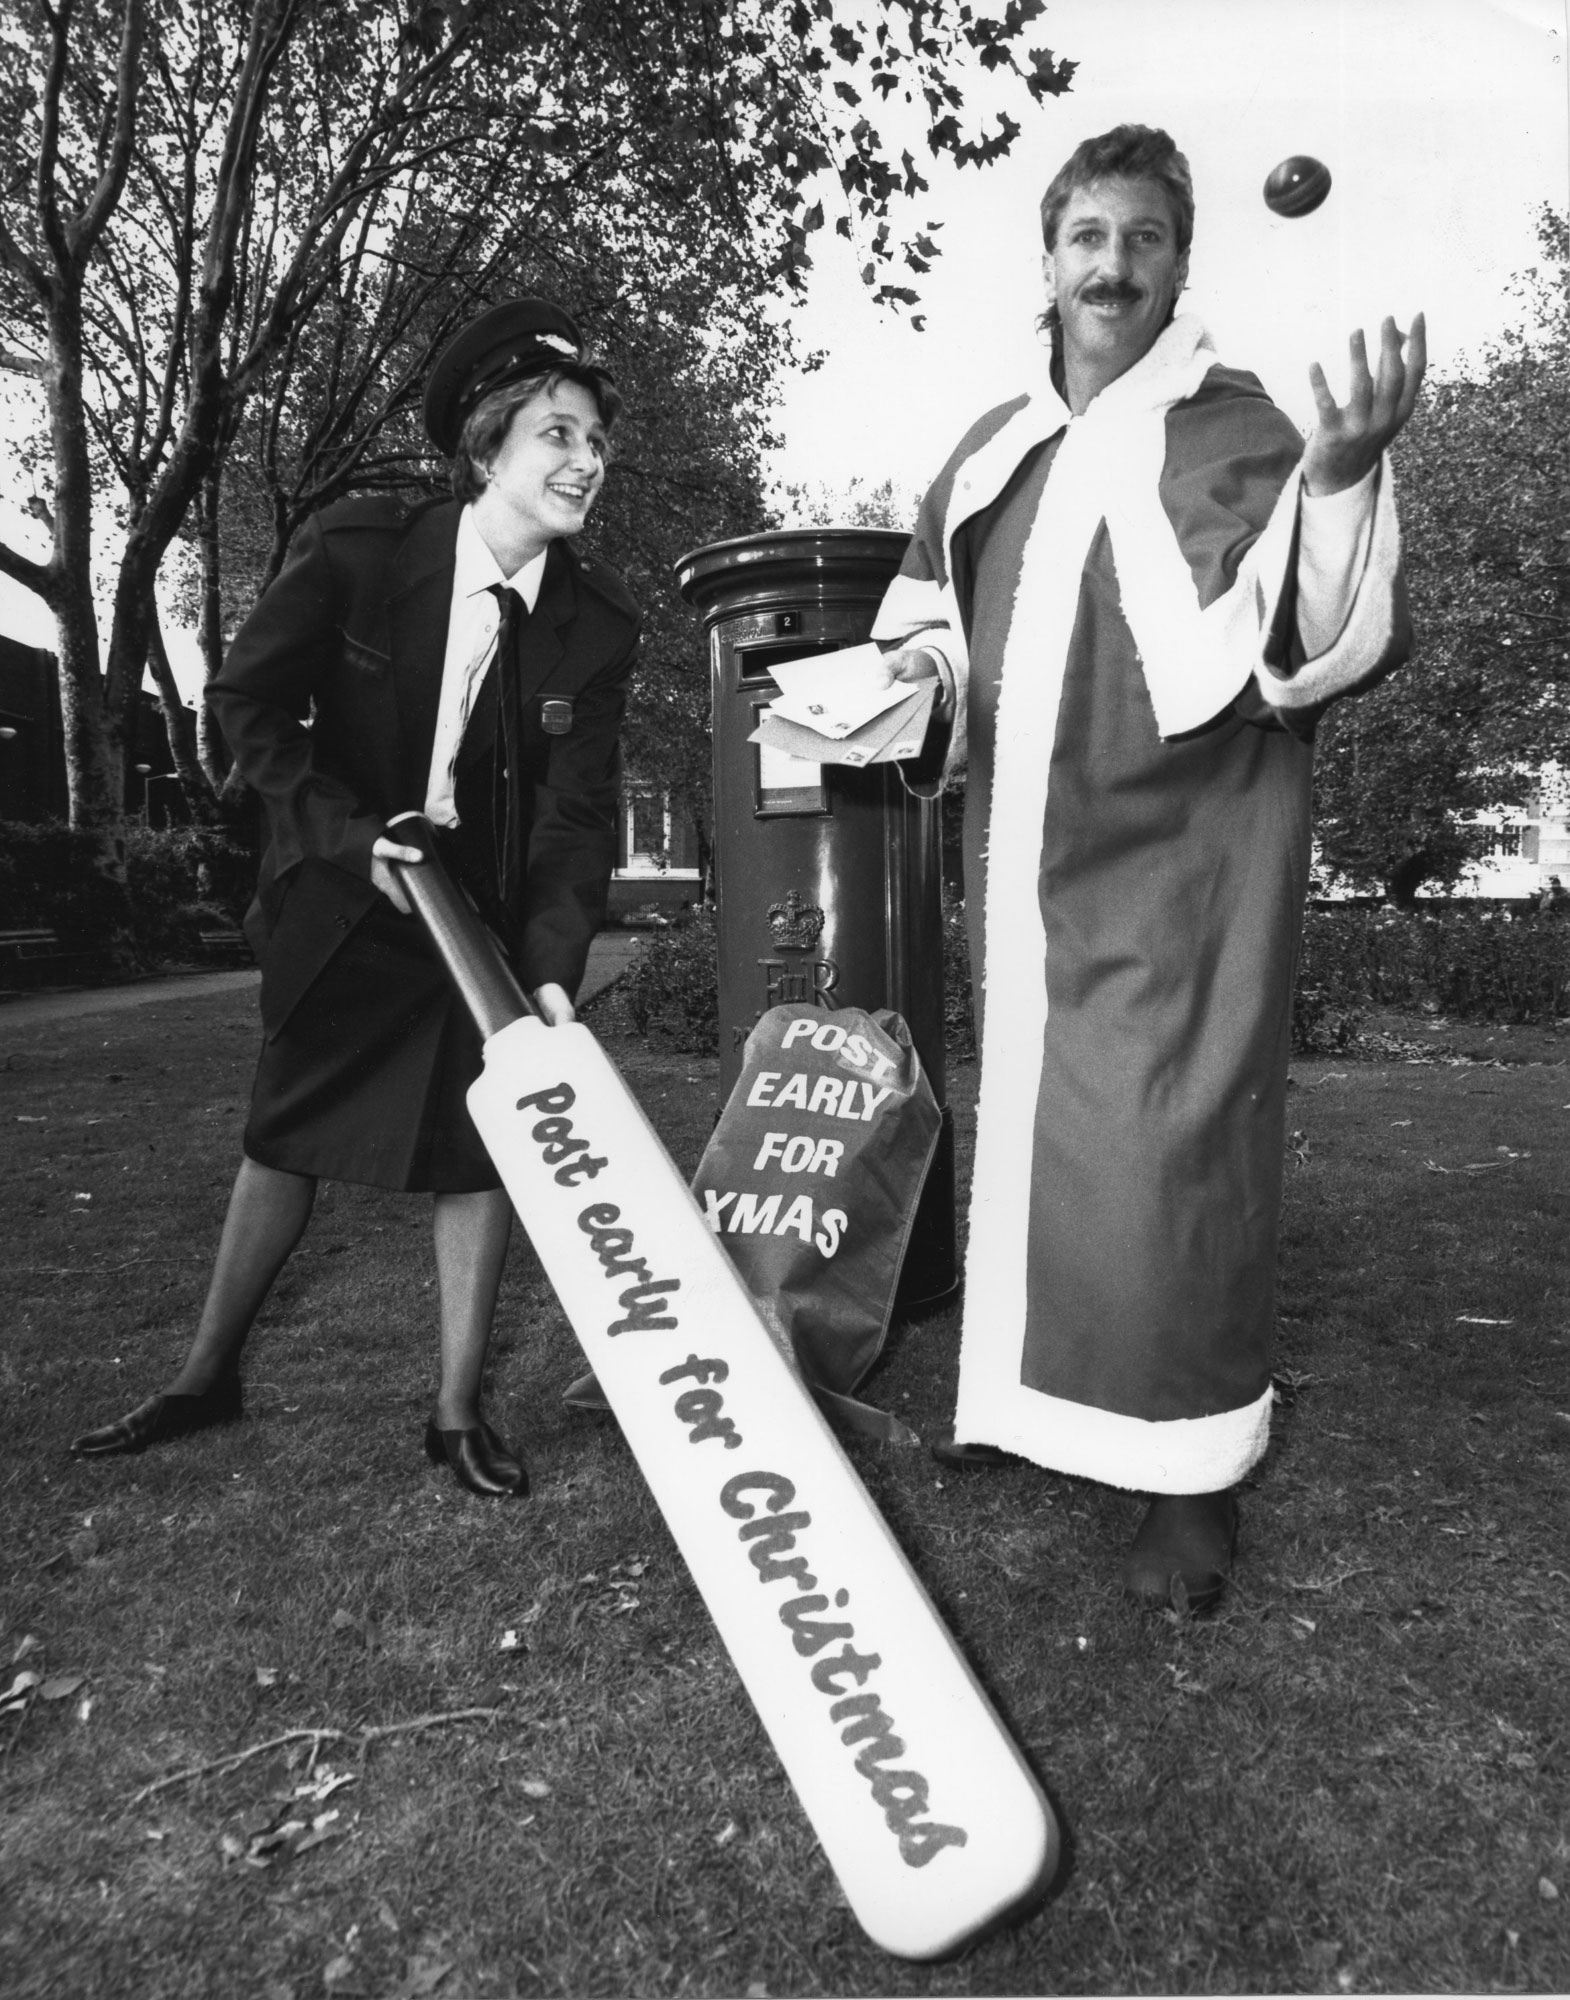 A black and white photograph with a postwomen holding a large cricket bat and Ian Botham dresses as Santa.